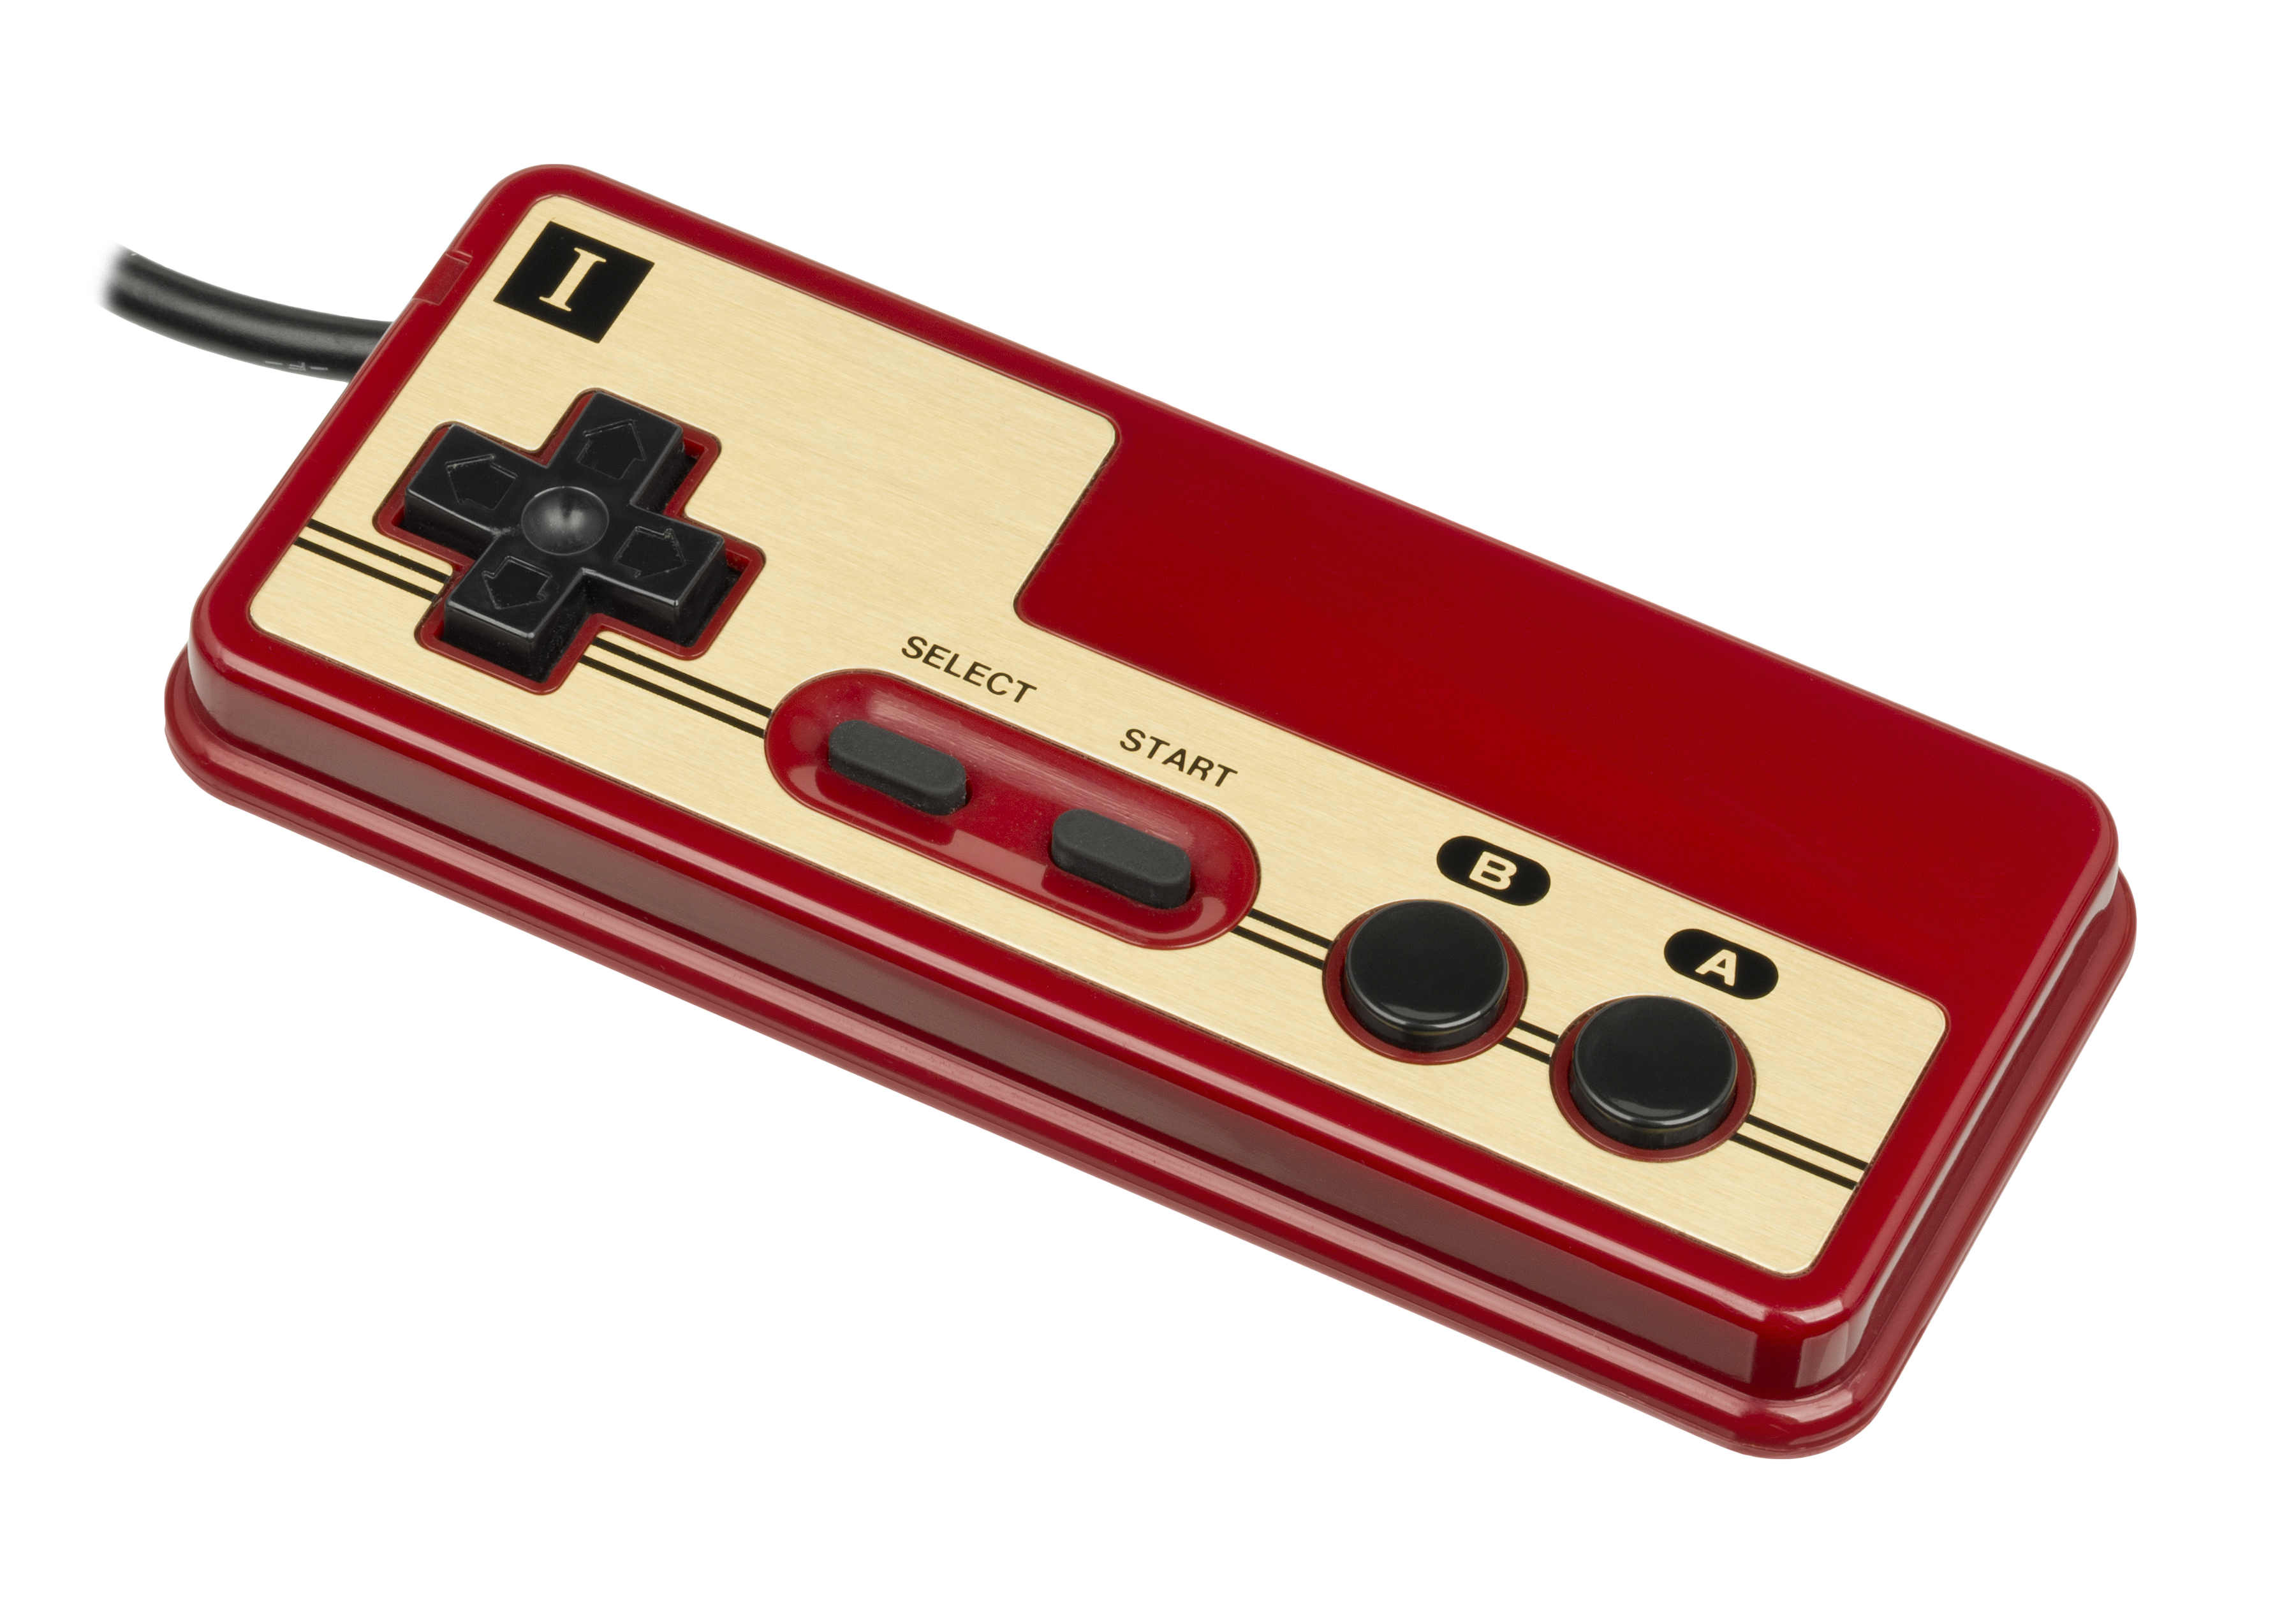 nintendo history Nintendo has sold well over 400 million portables across more than three decades, with nintendo ds and game boy being the the #2 and #3 best-selling.